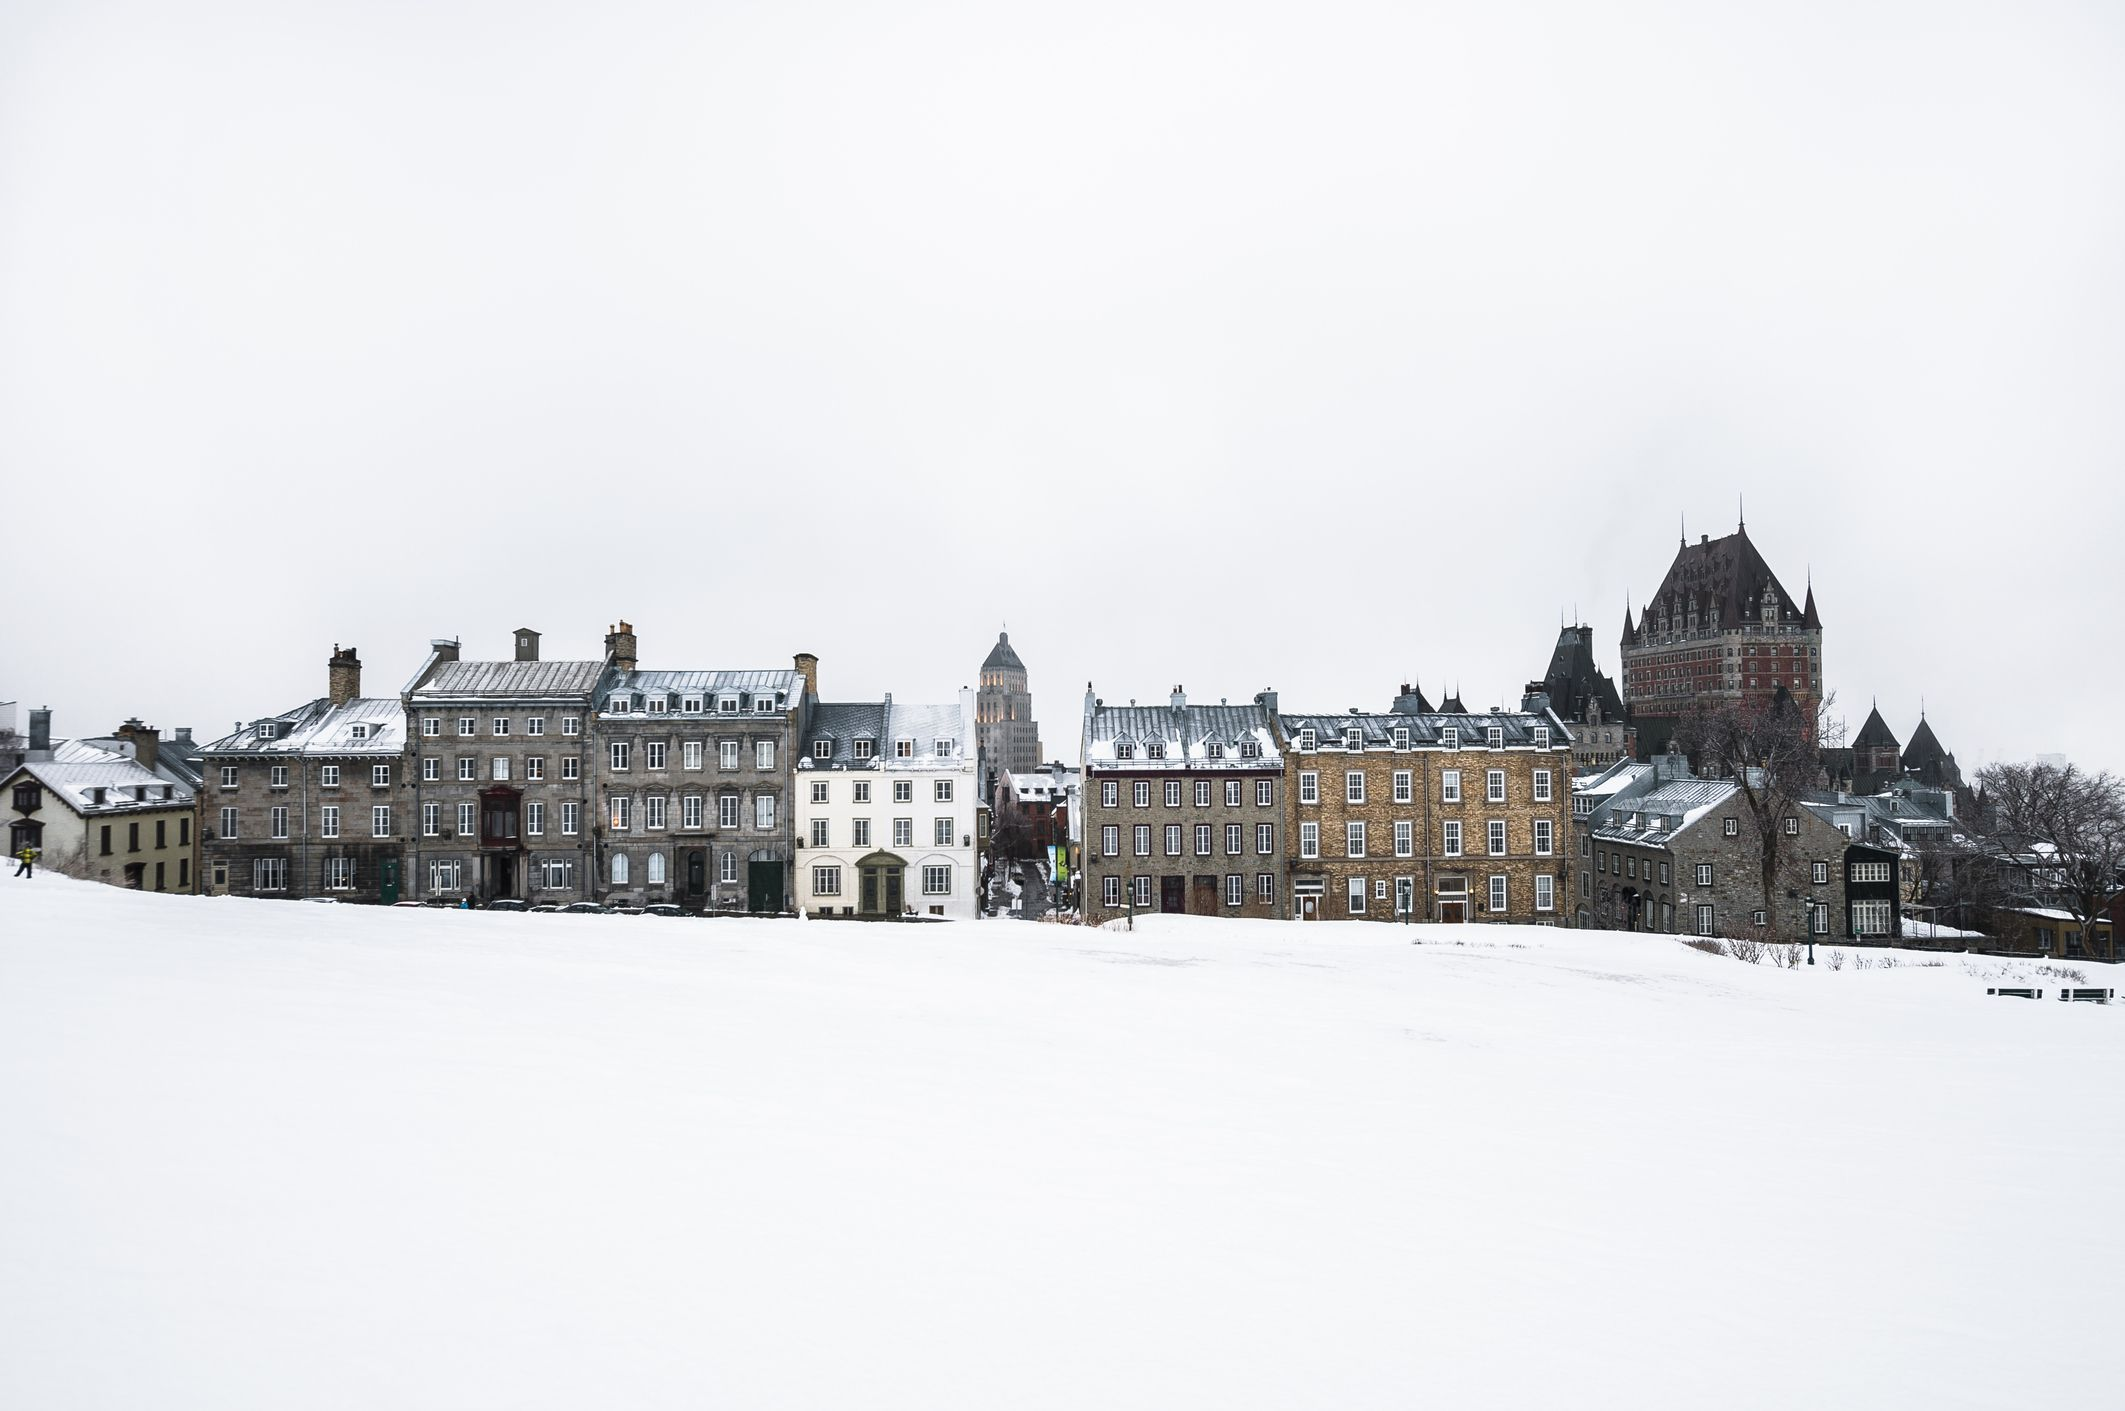 The World's Top 6 Snowiest Cities